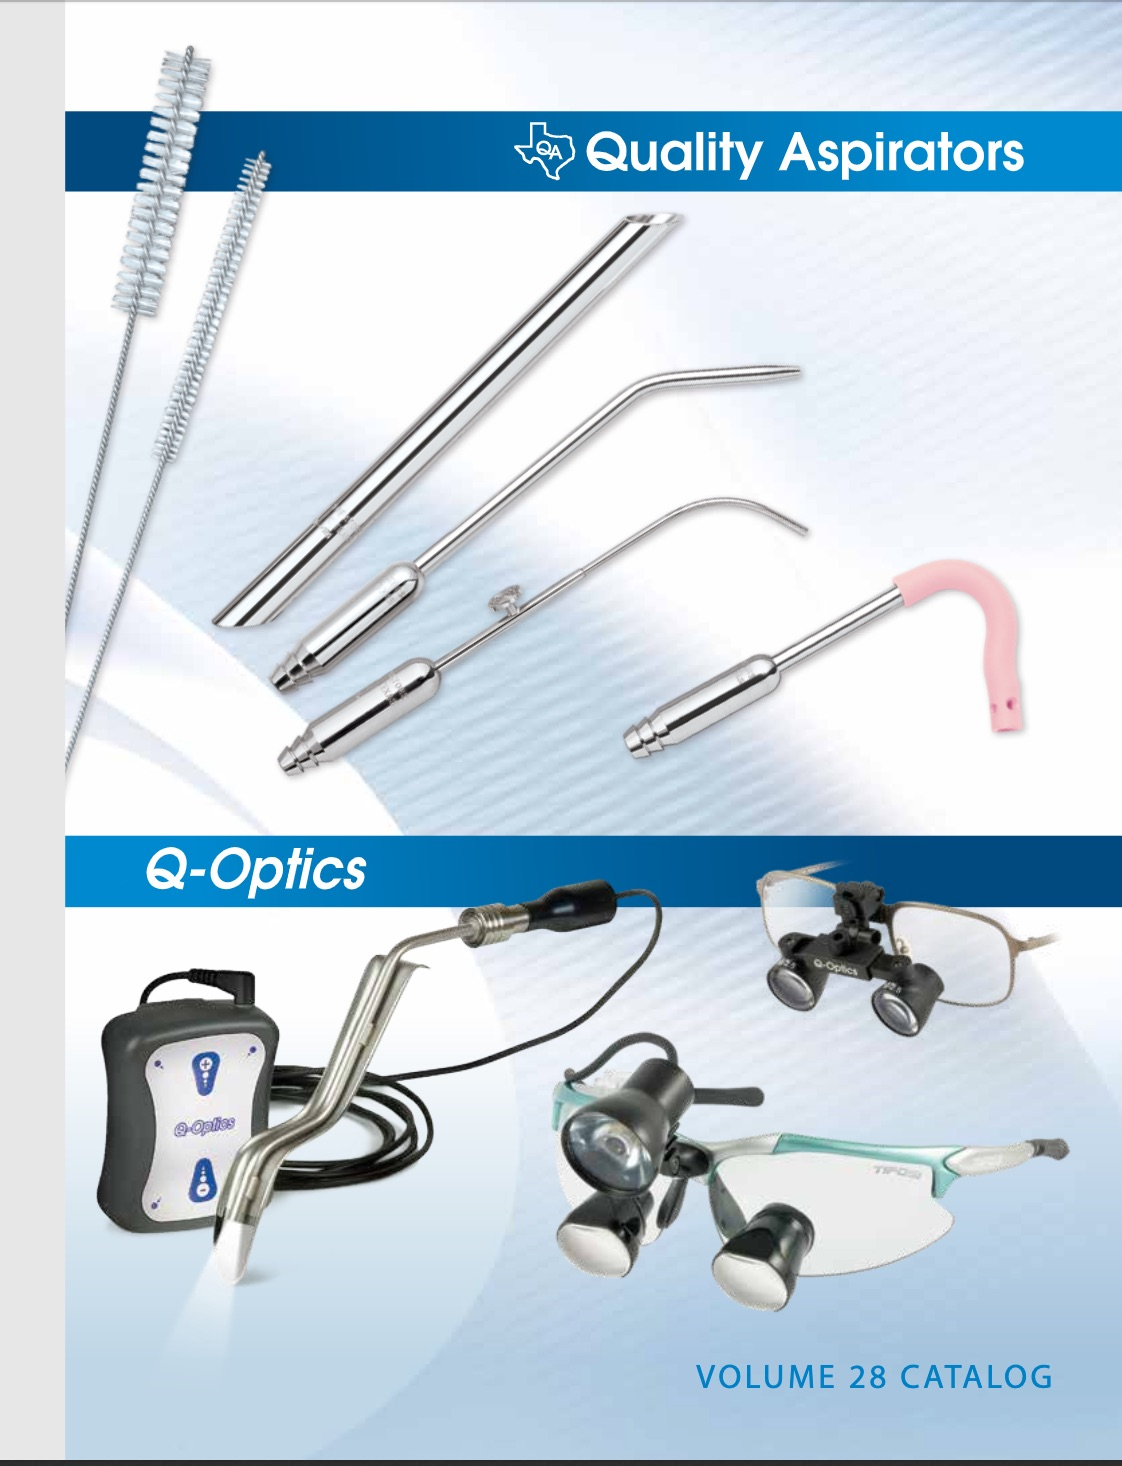 Download the Quality Aspirators Catalog